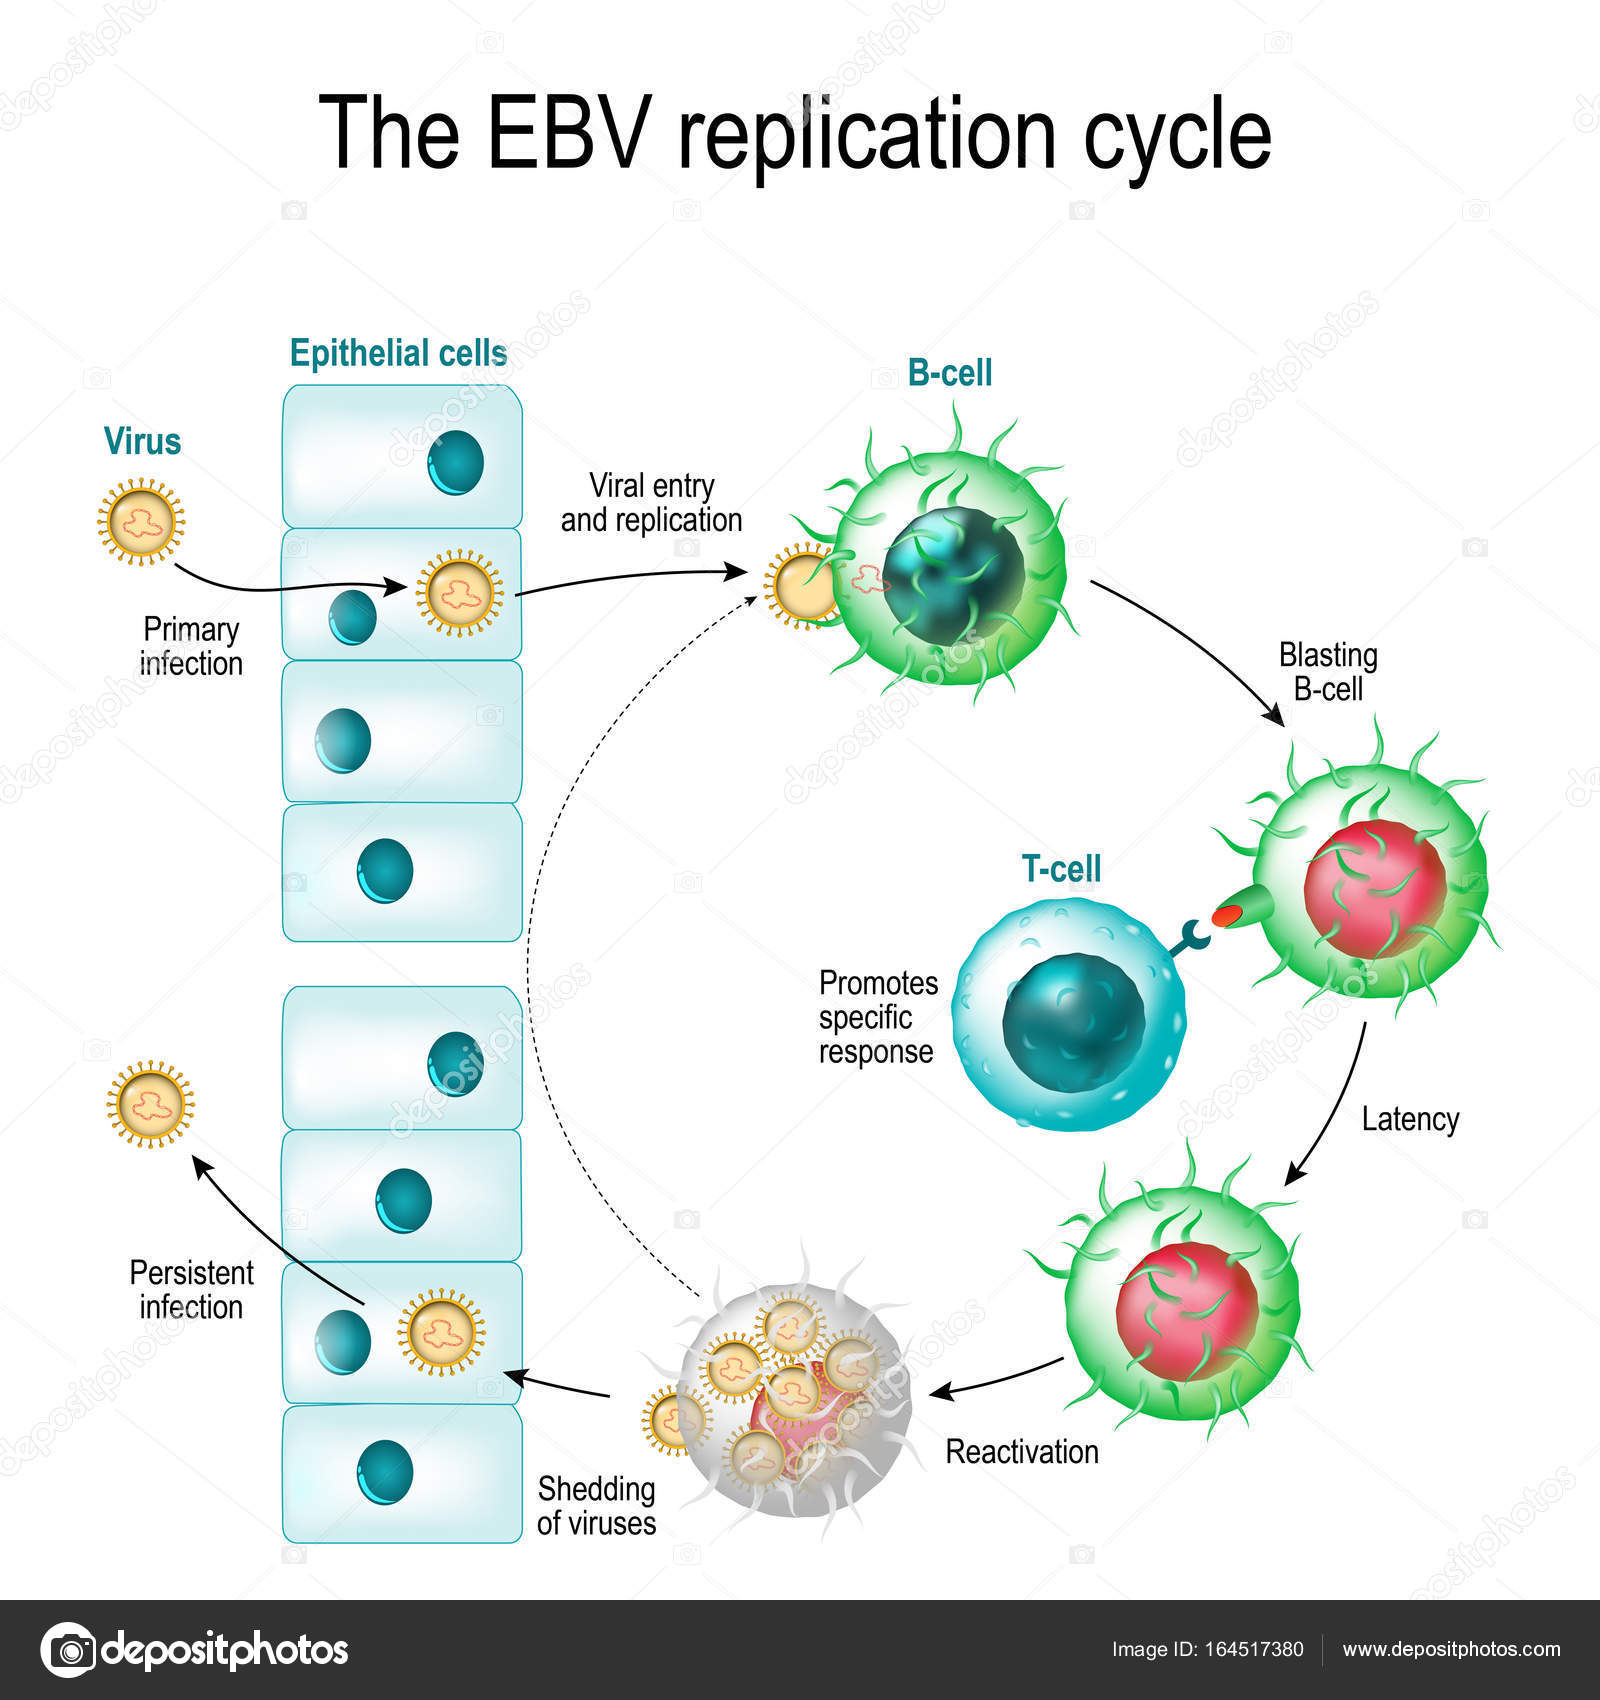 The Sleeping Giant – Tips to Treat Reactivation of Epstein-Barr Virus